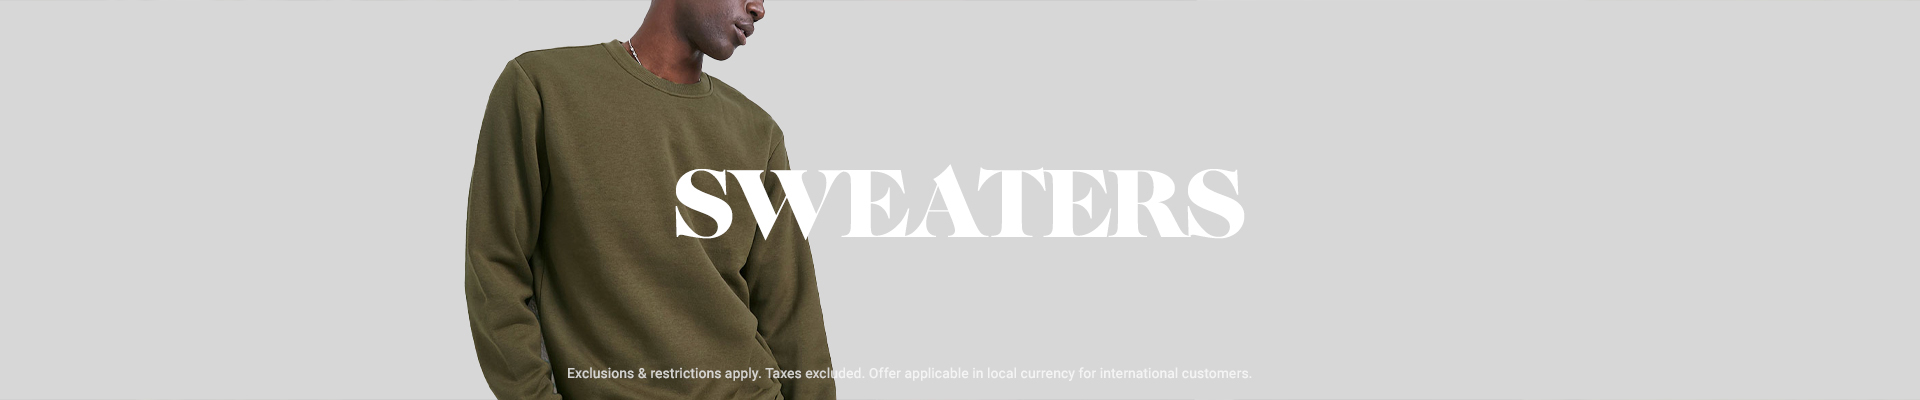 SWEATERS *Exclusions & restrictions apply. Taxes excluded. Offer applicable in local currency for international customers.